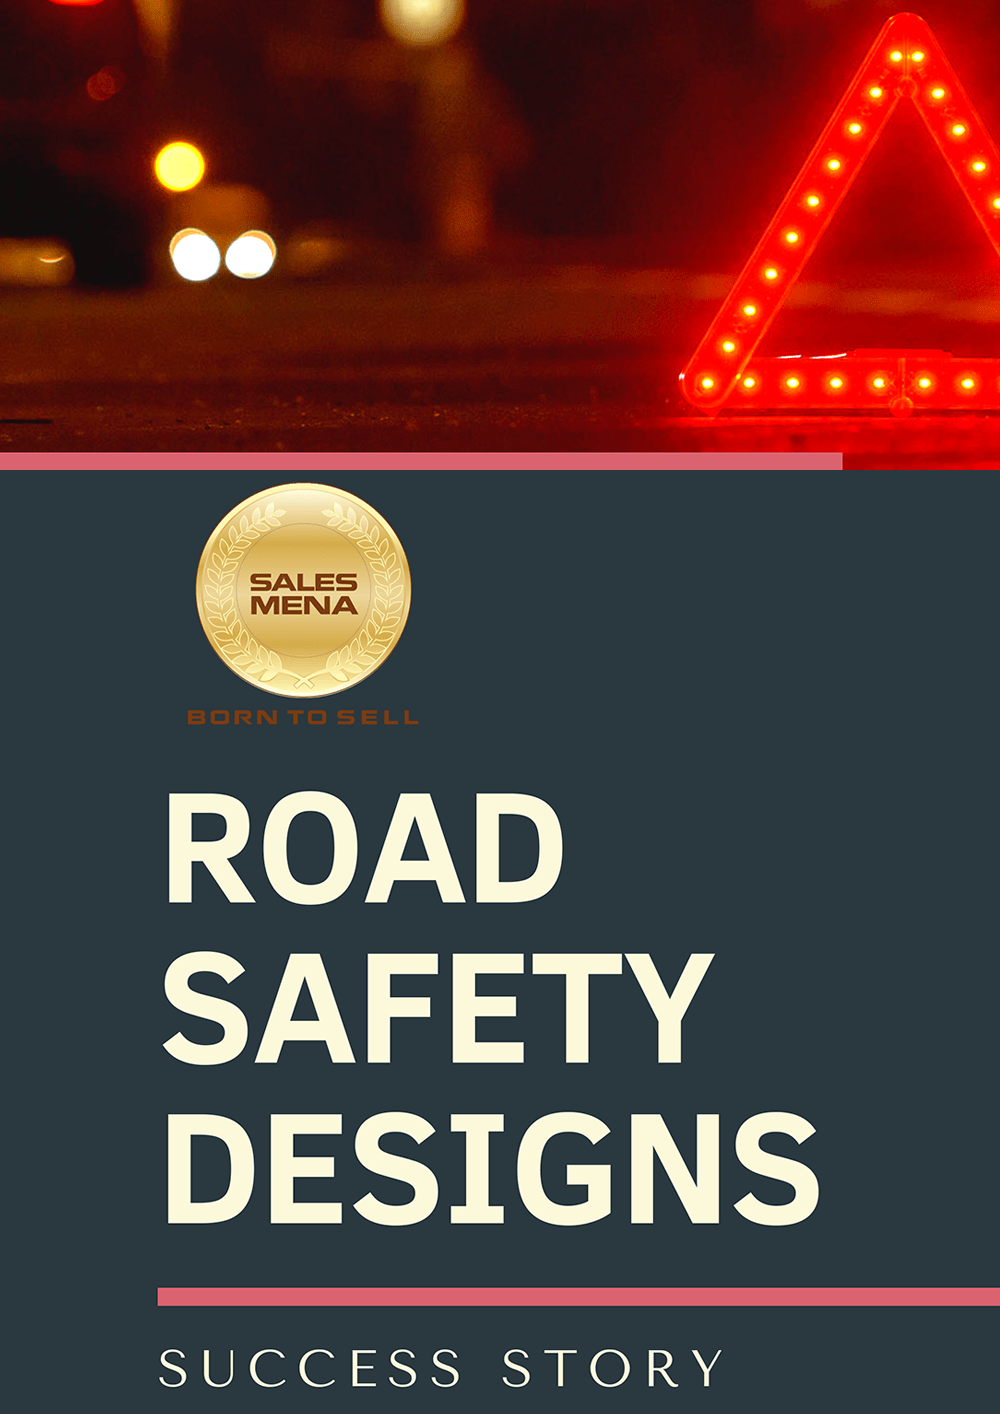 Road Safety Designs